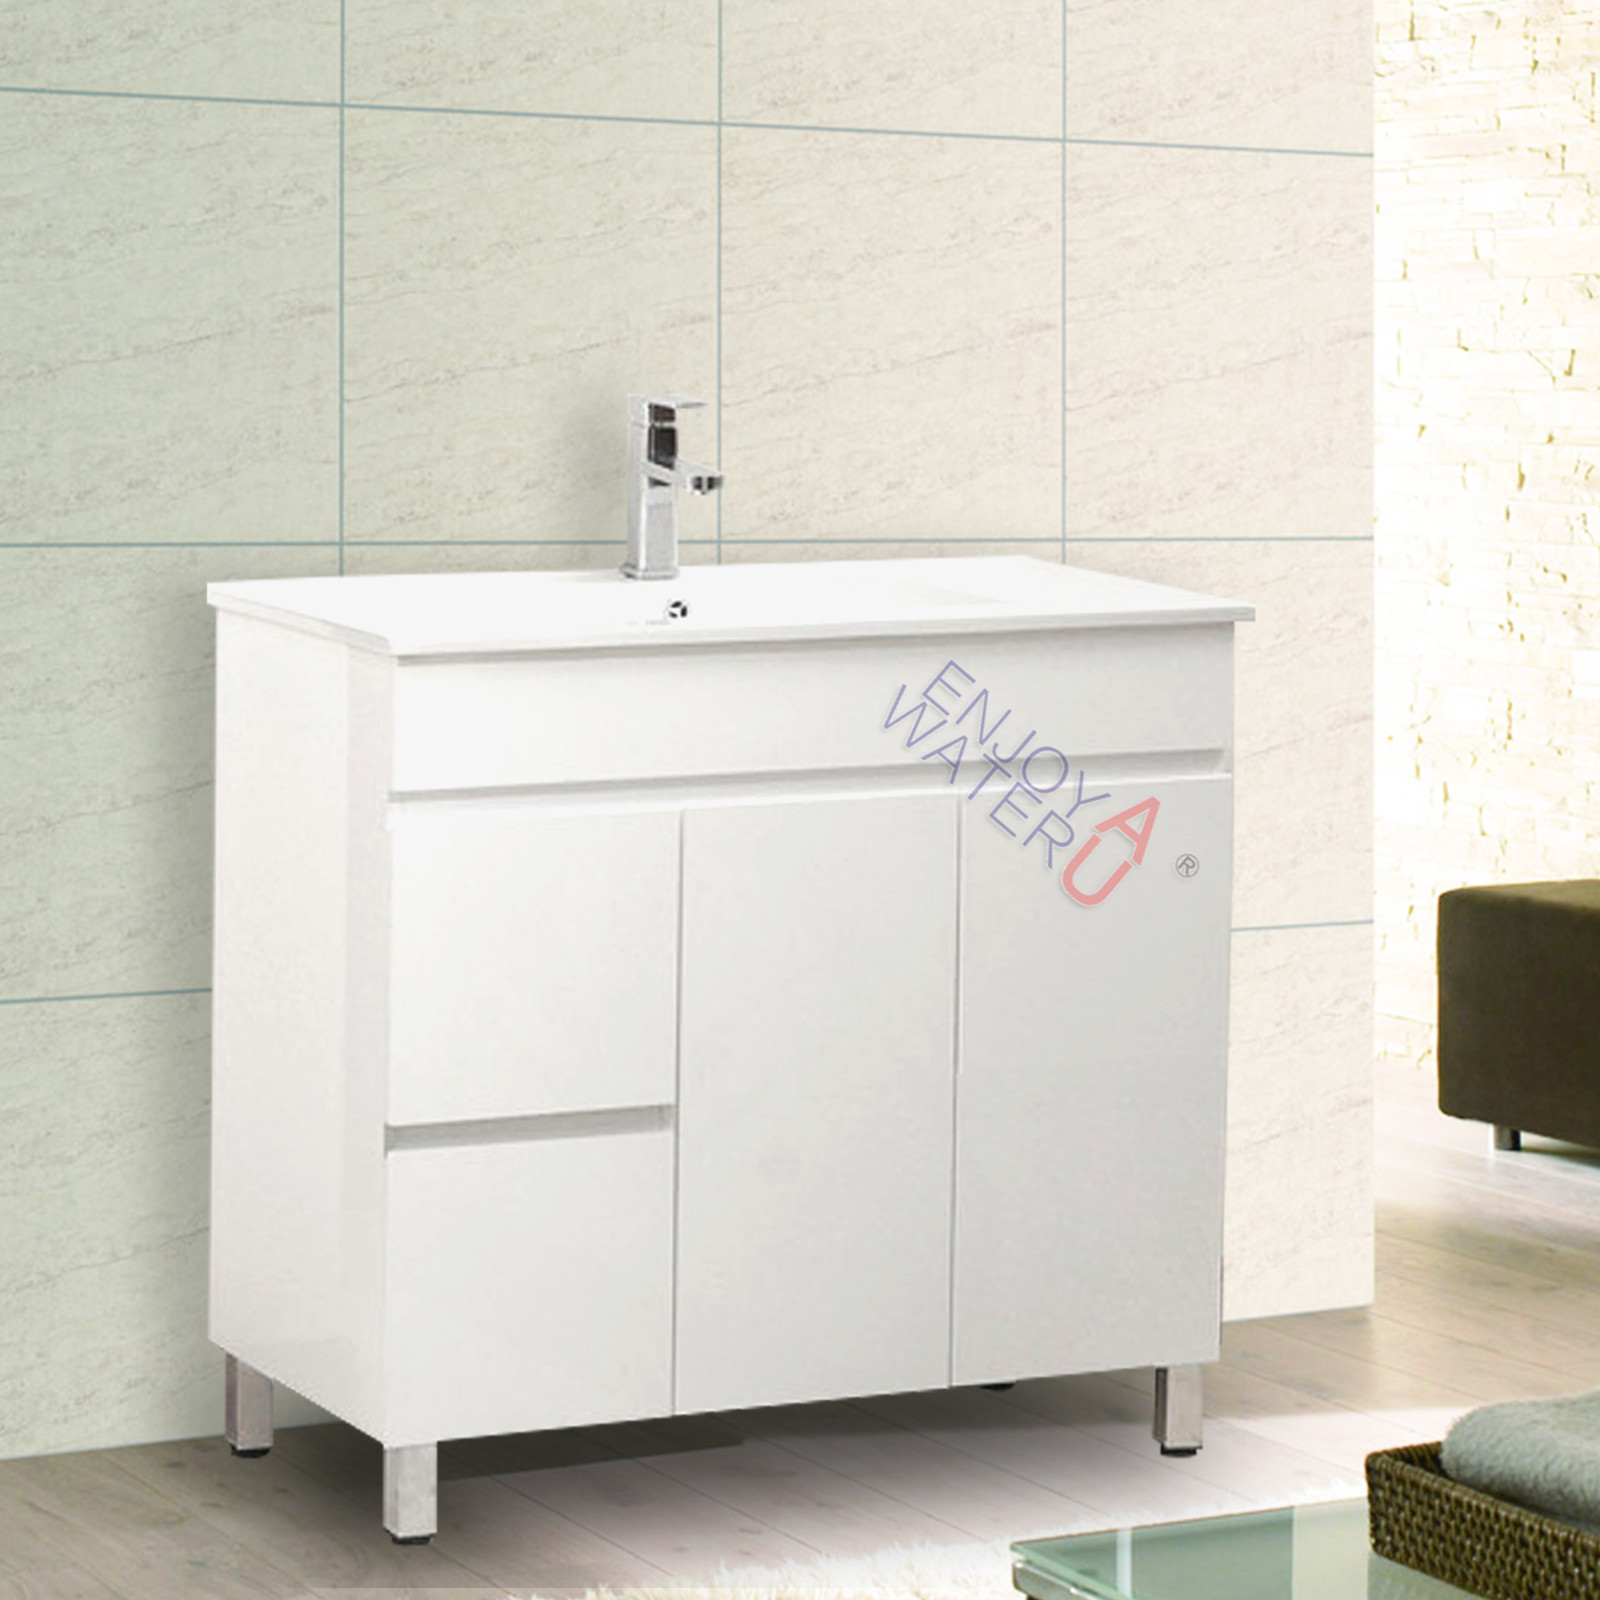 900mm bathroom vanity cabinet unit freestanding ceramic for Bathroom cabinets ebay australia